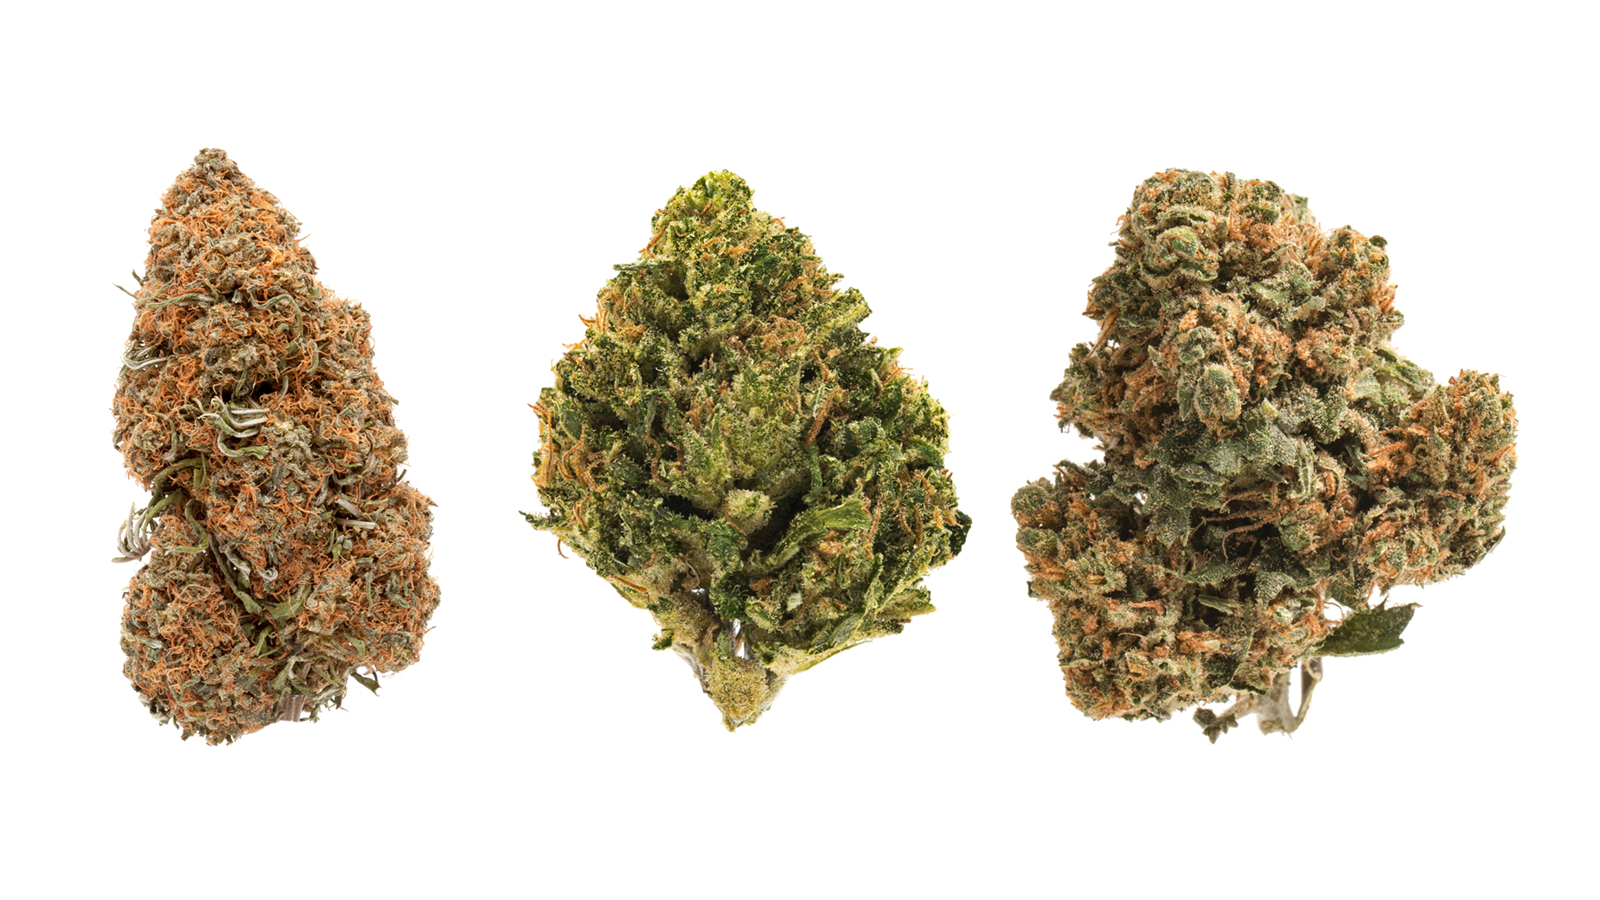 7 high-CBD cannabis strains you should know about